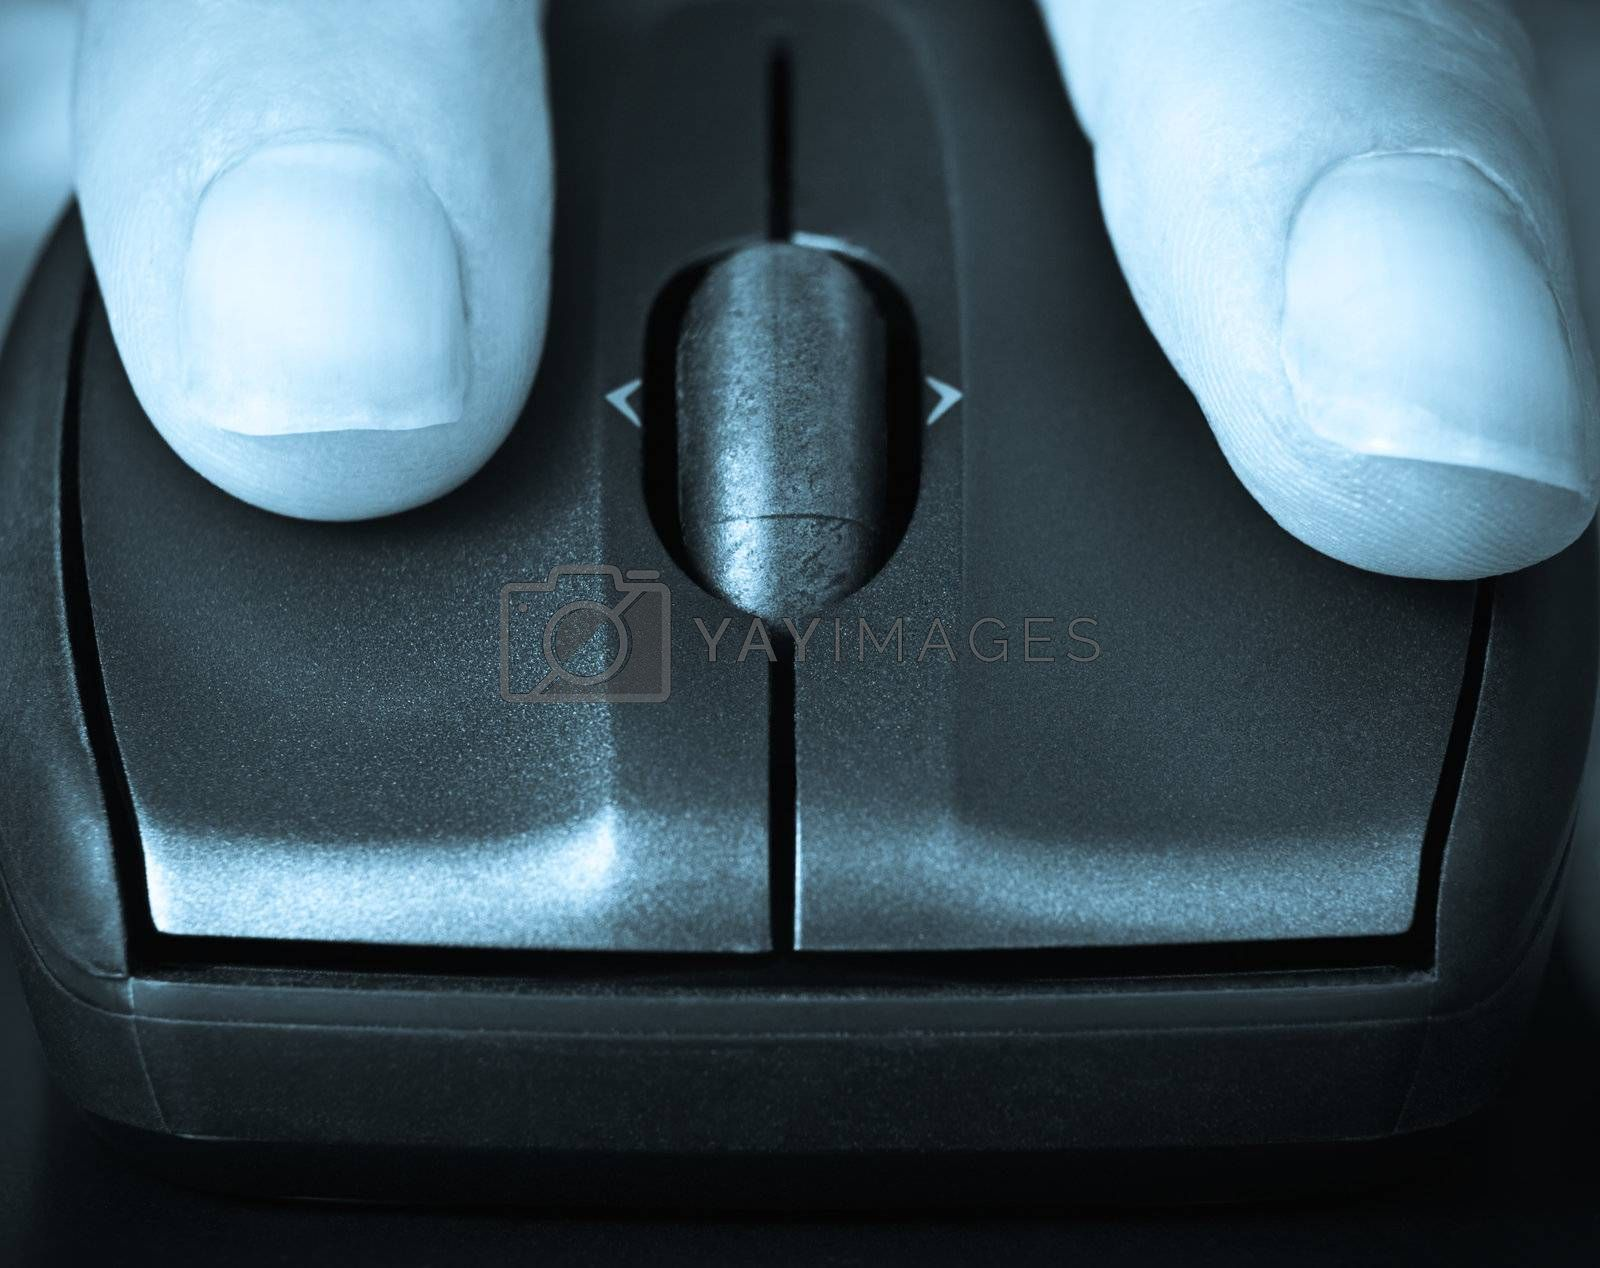 closeup of fingers on a computer mouse clicking,suggesting searching or informing, blue toned